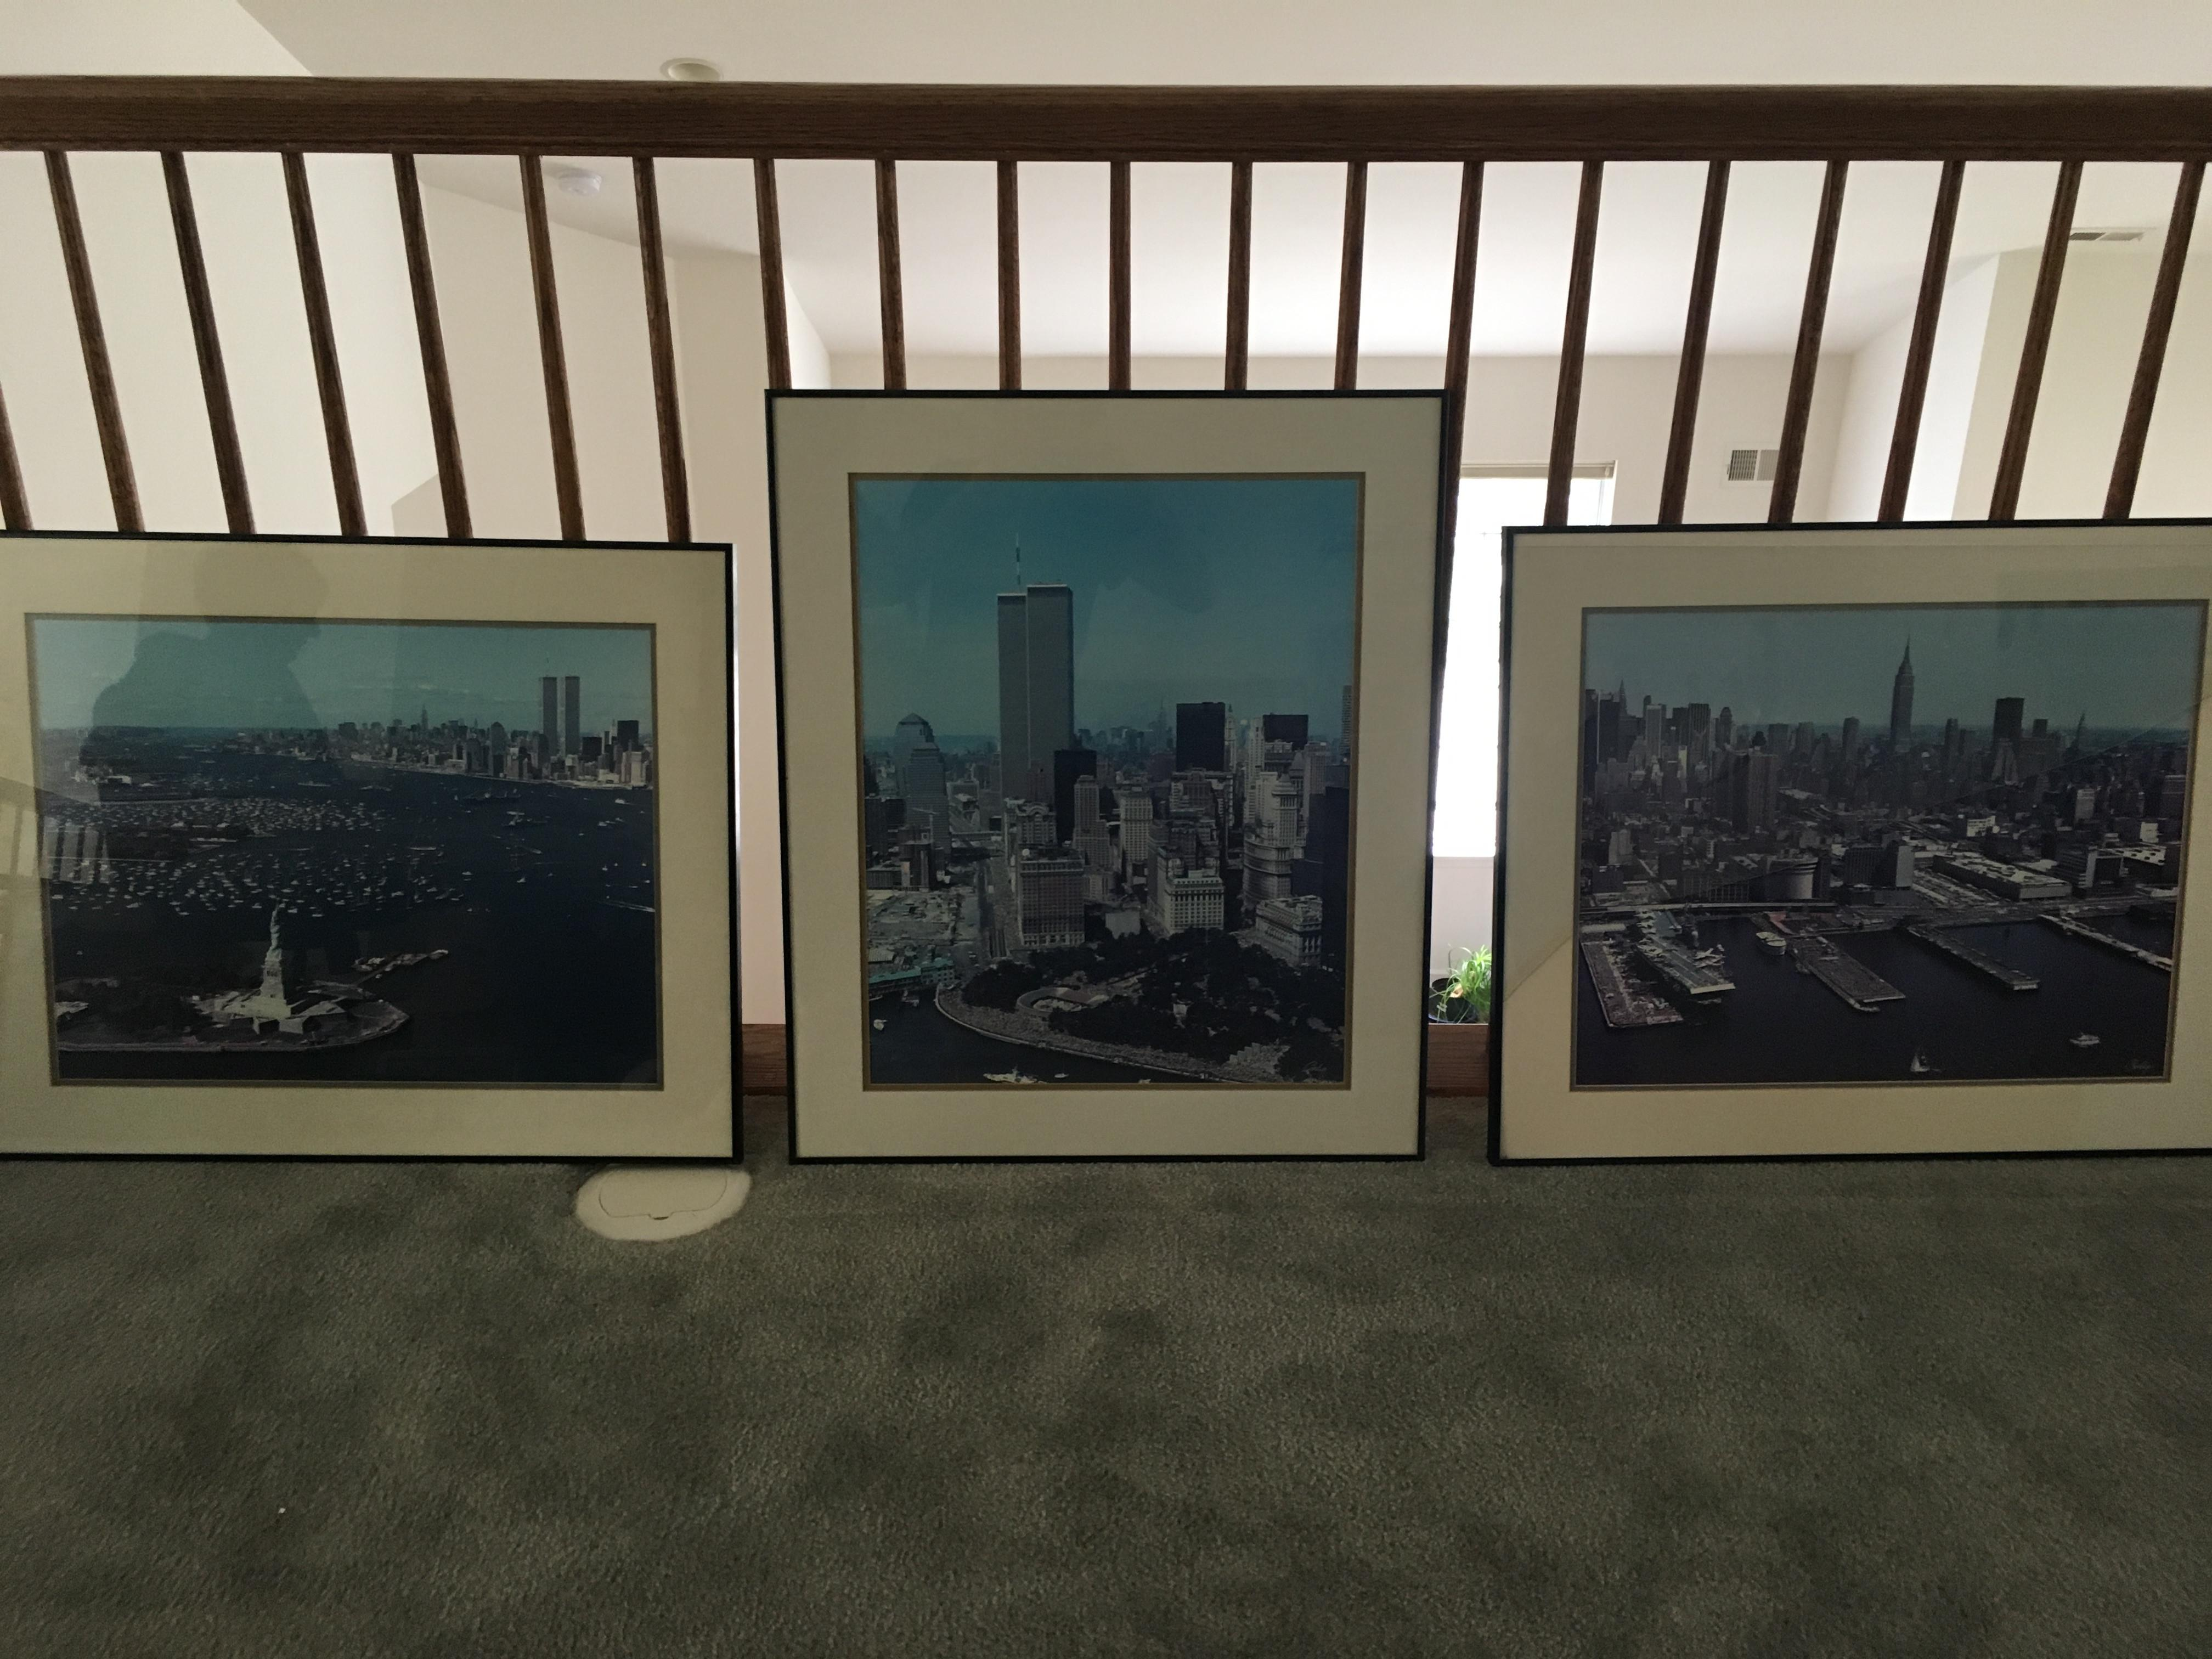 Pre 9/11 New York City Signed & Framed Original Photographs